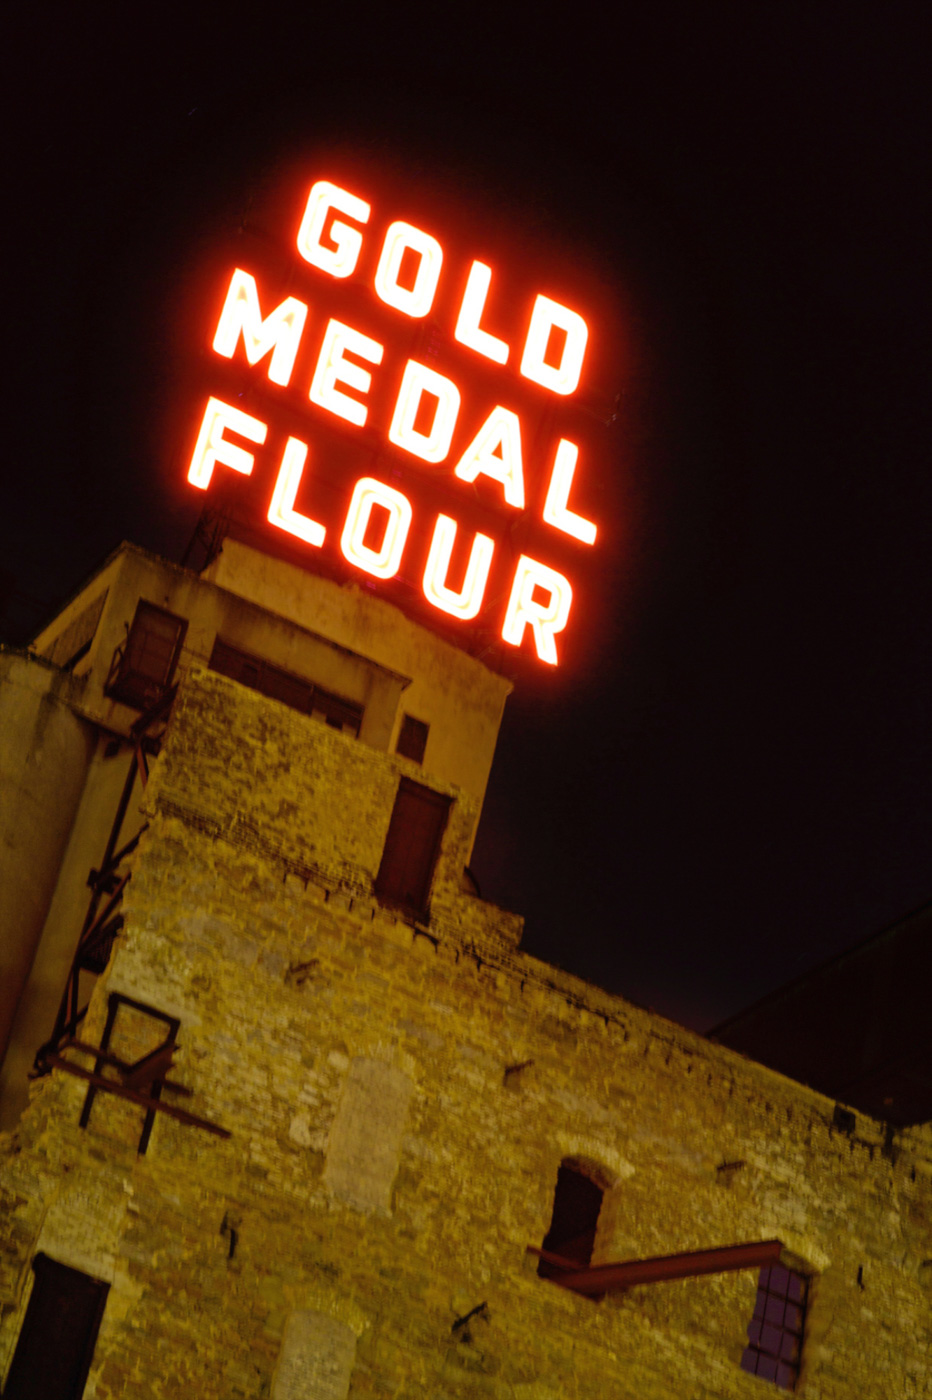 Minneapolis Gold Medal Flour Sign at Night